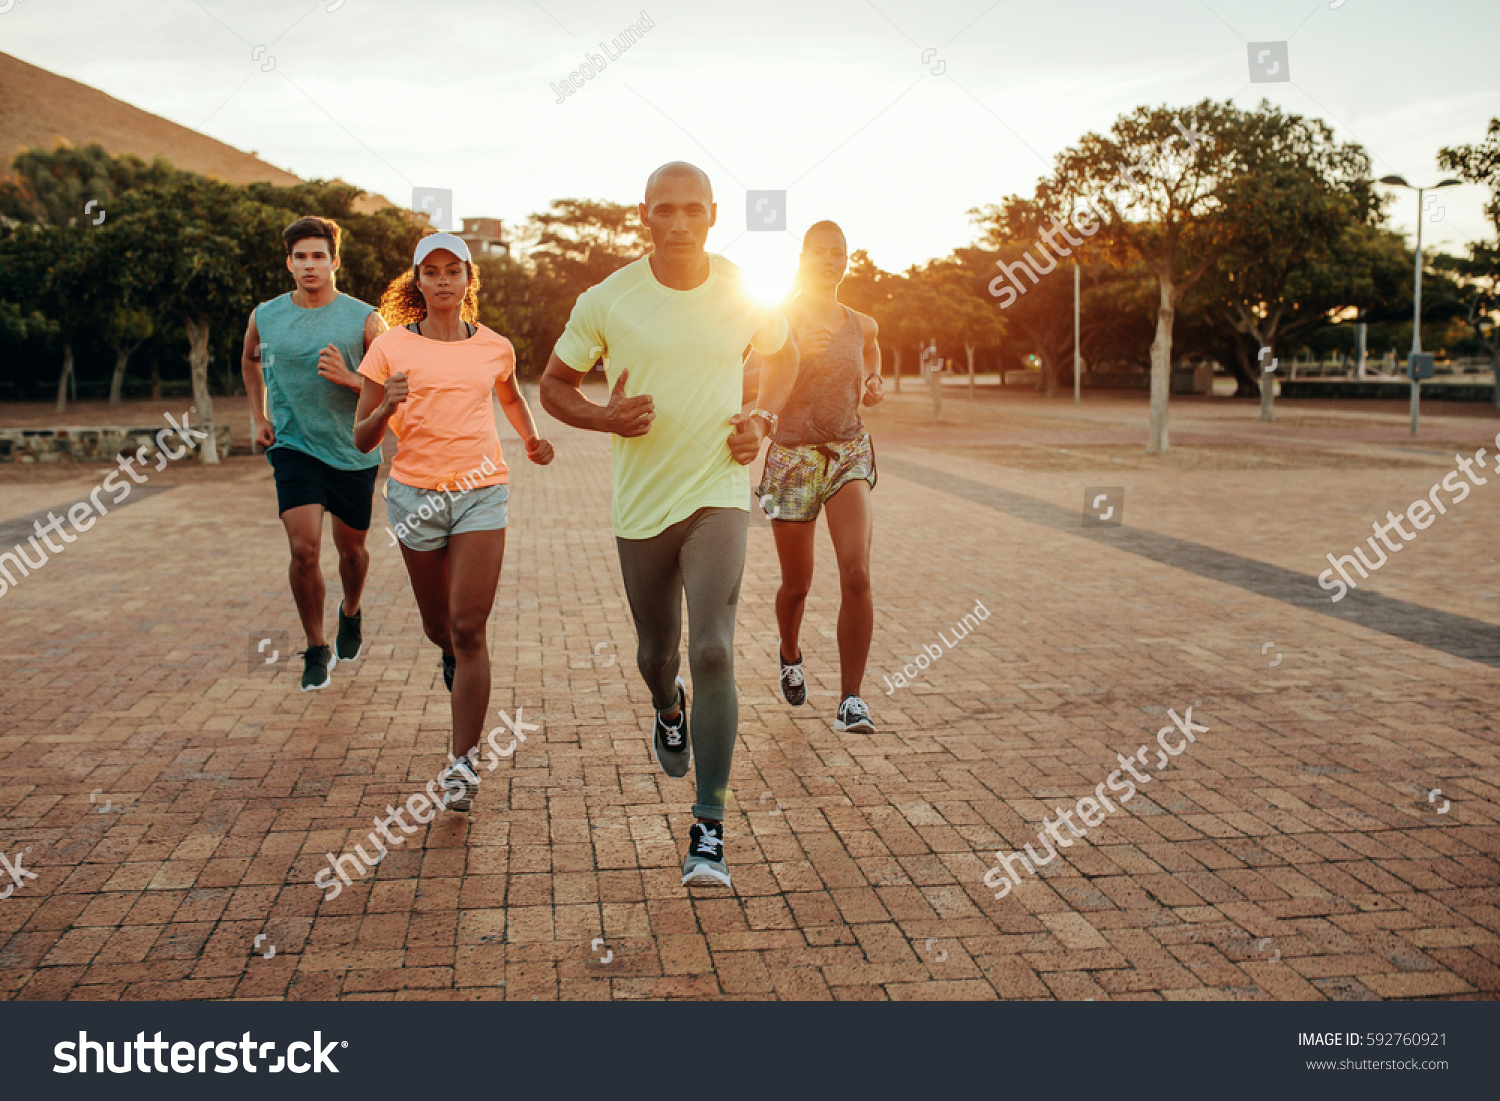 Portrait of young runners on path at the park. Group running outdoors in evening. #592760921